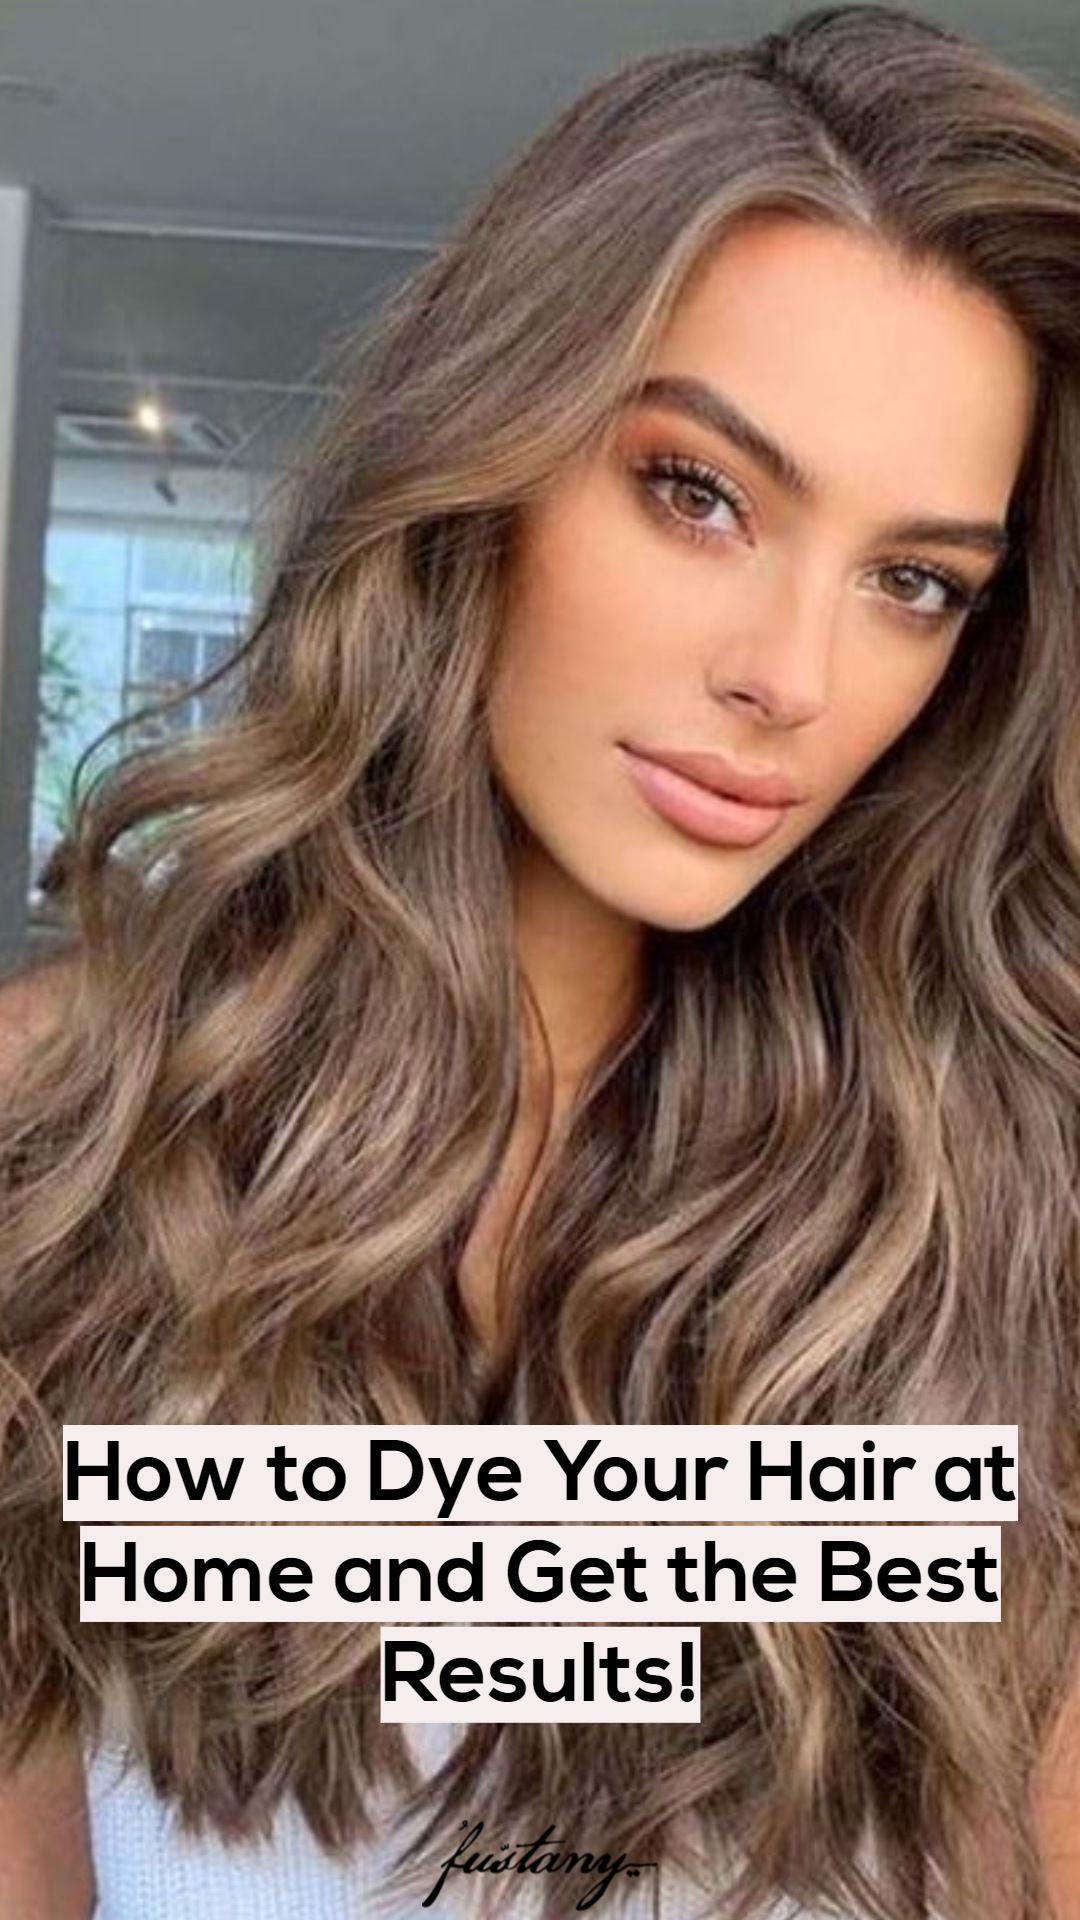 How To Dye Your Hair At Home And Get The Best Results In 2020 How To Dye Brown Hair Blonde How To Dye Hair At Home Brown Hair Dye